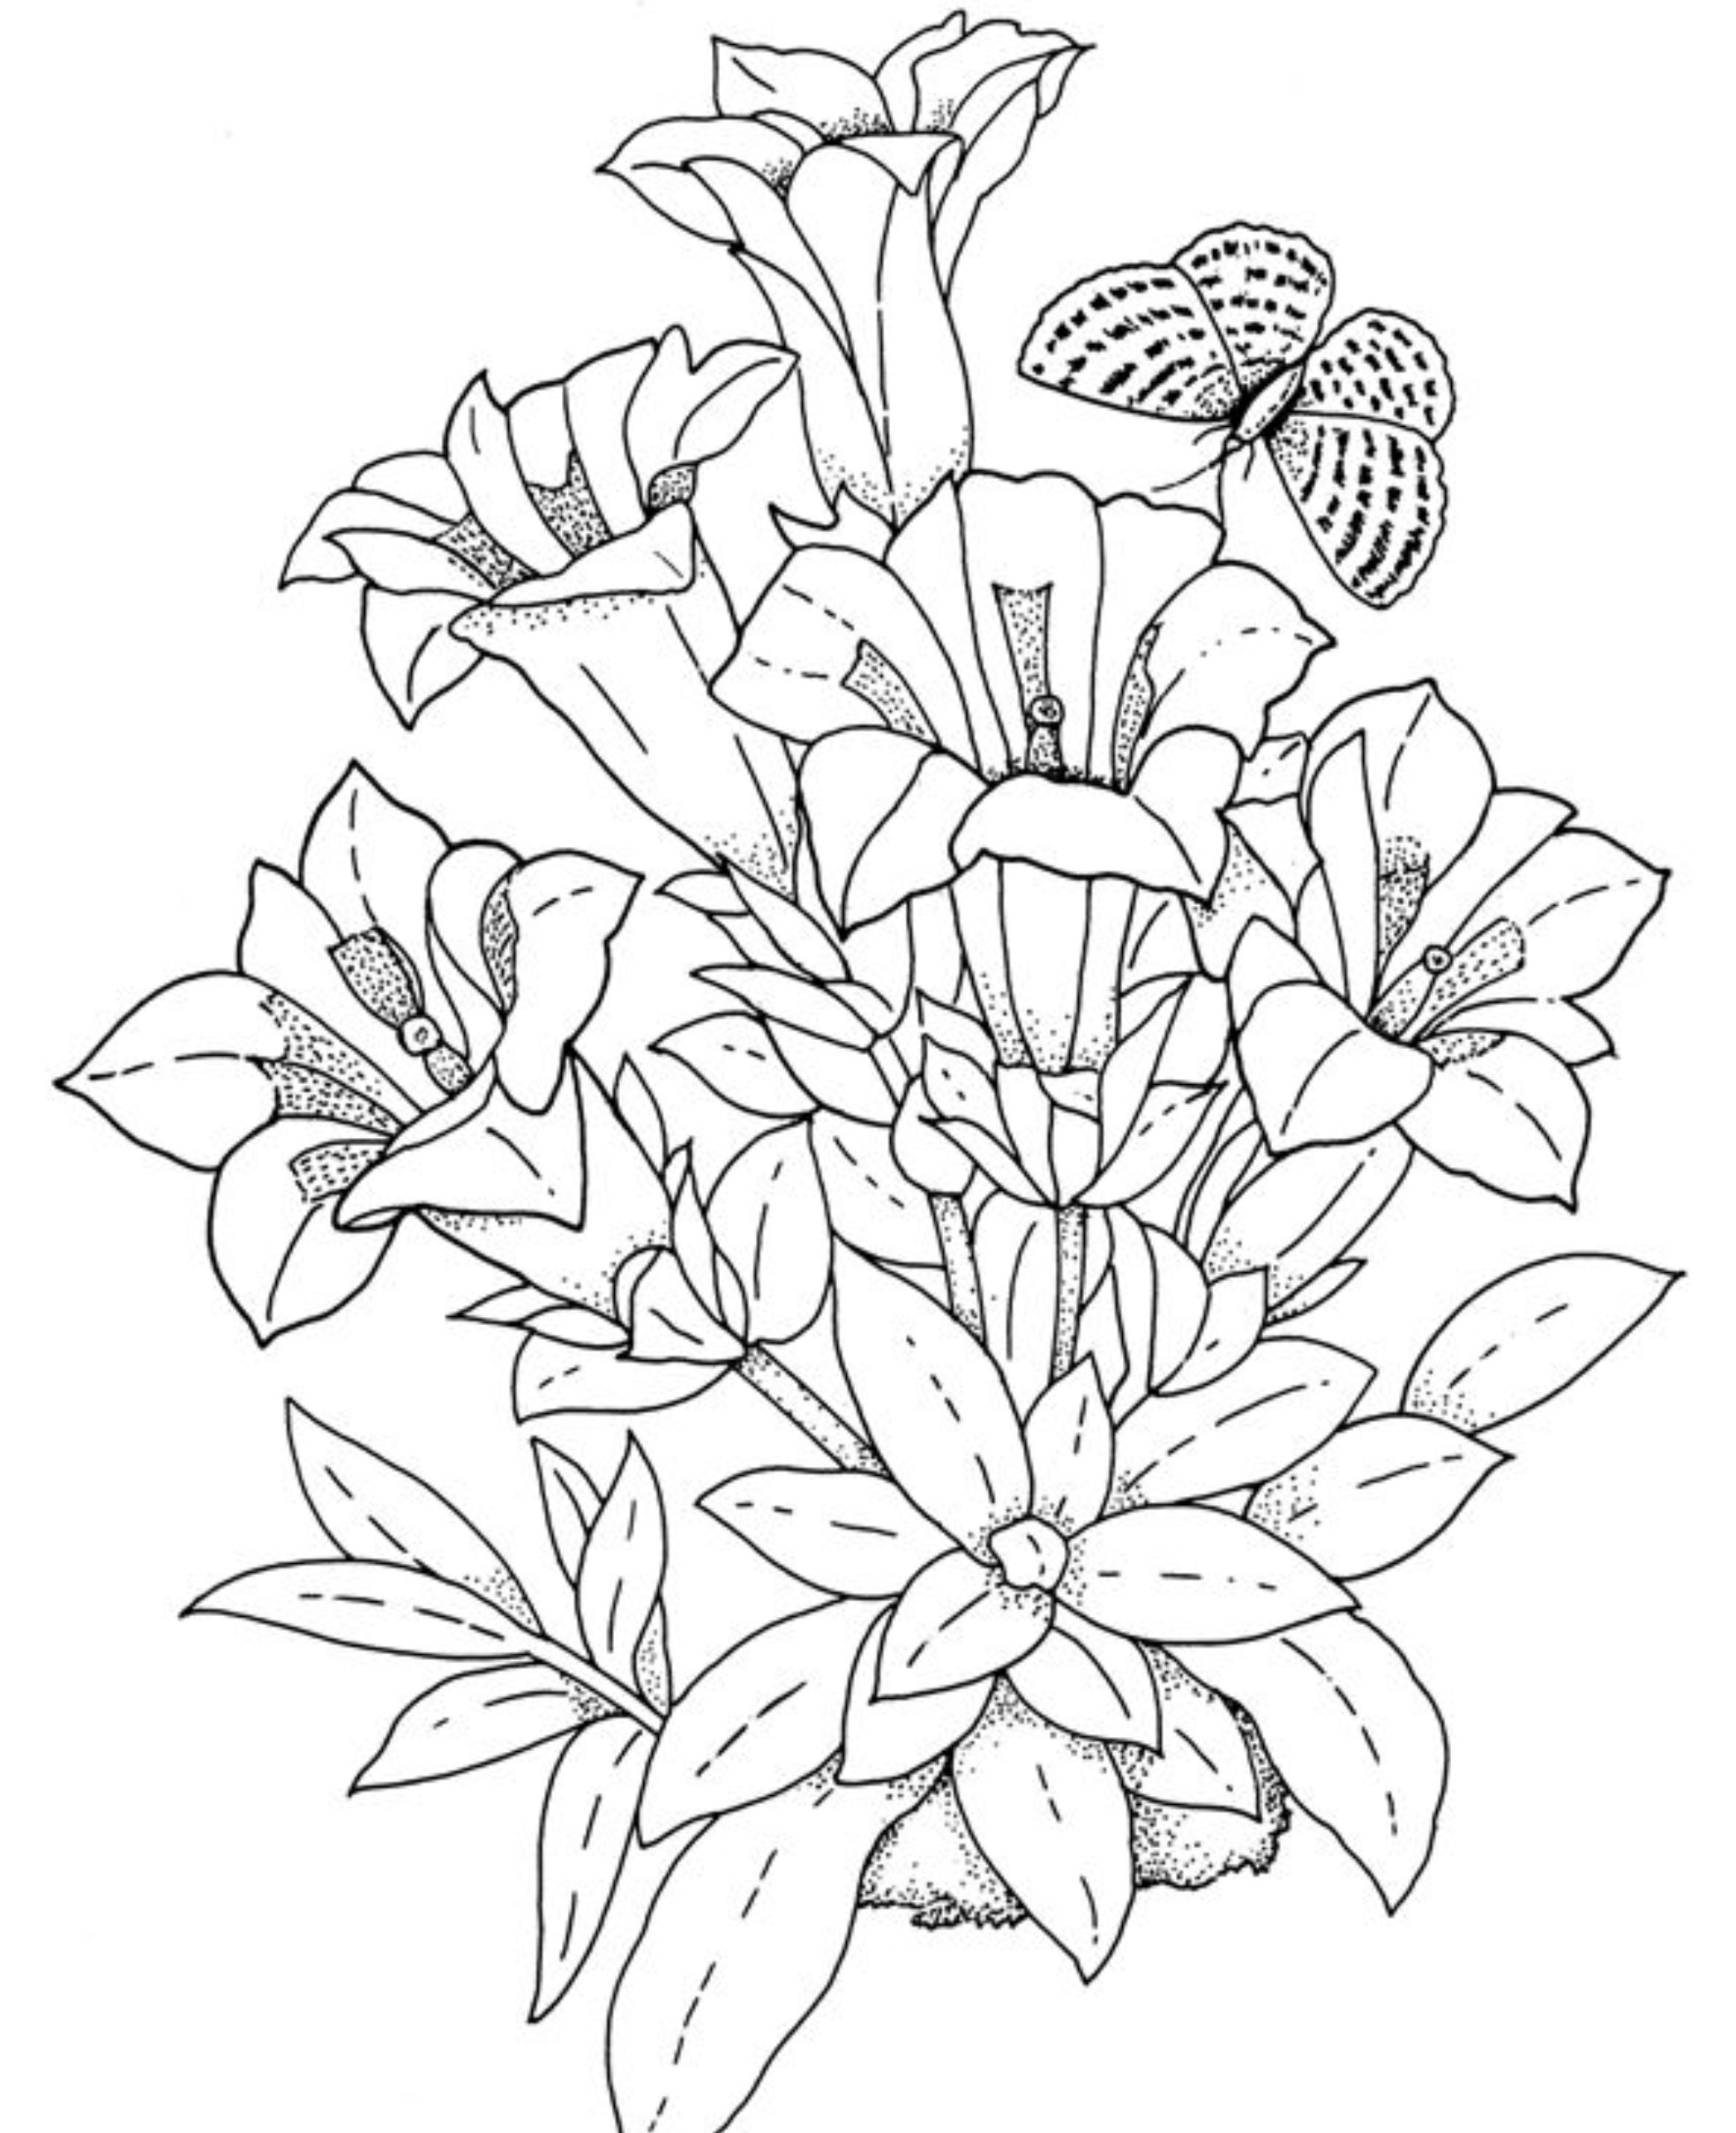 Drawn bouquet realistic Pages Print  flowers pages